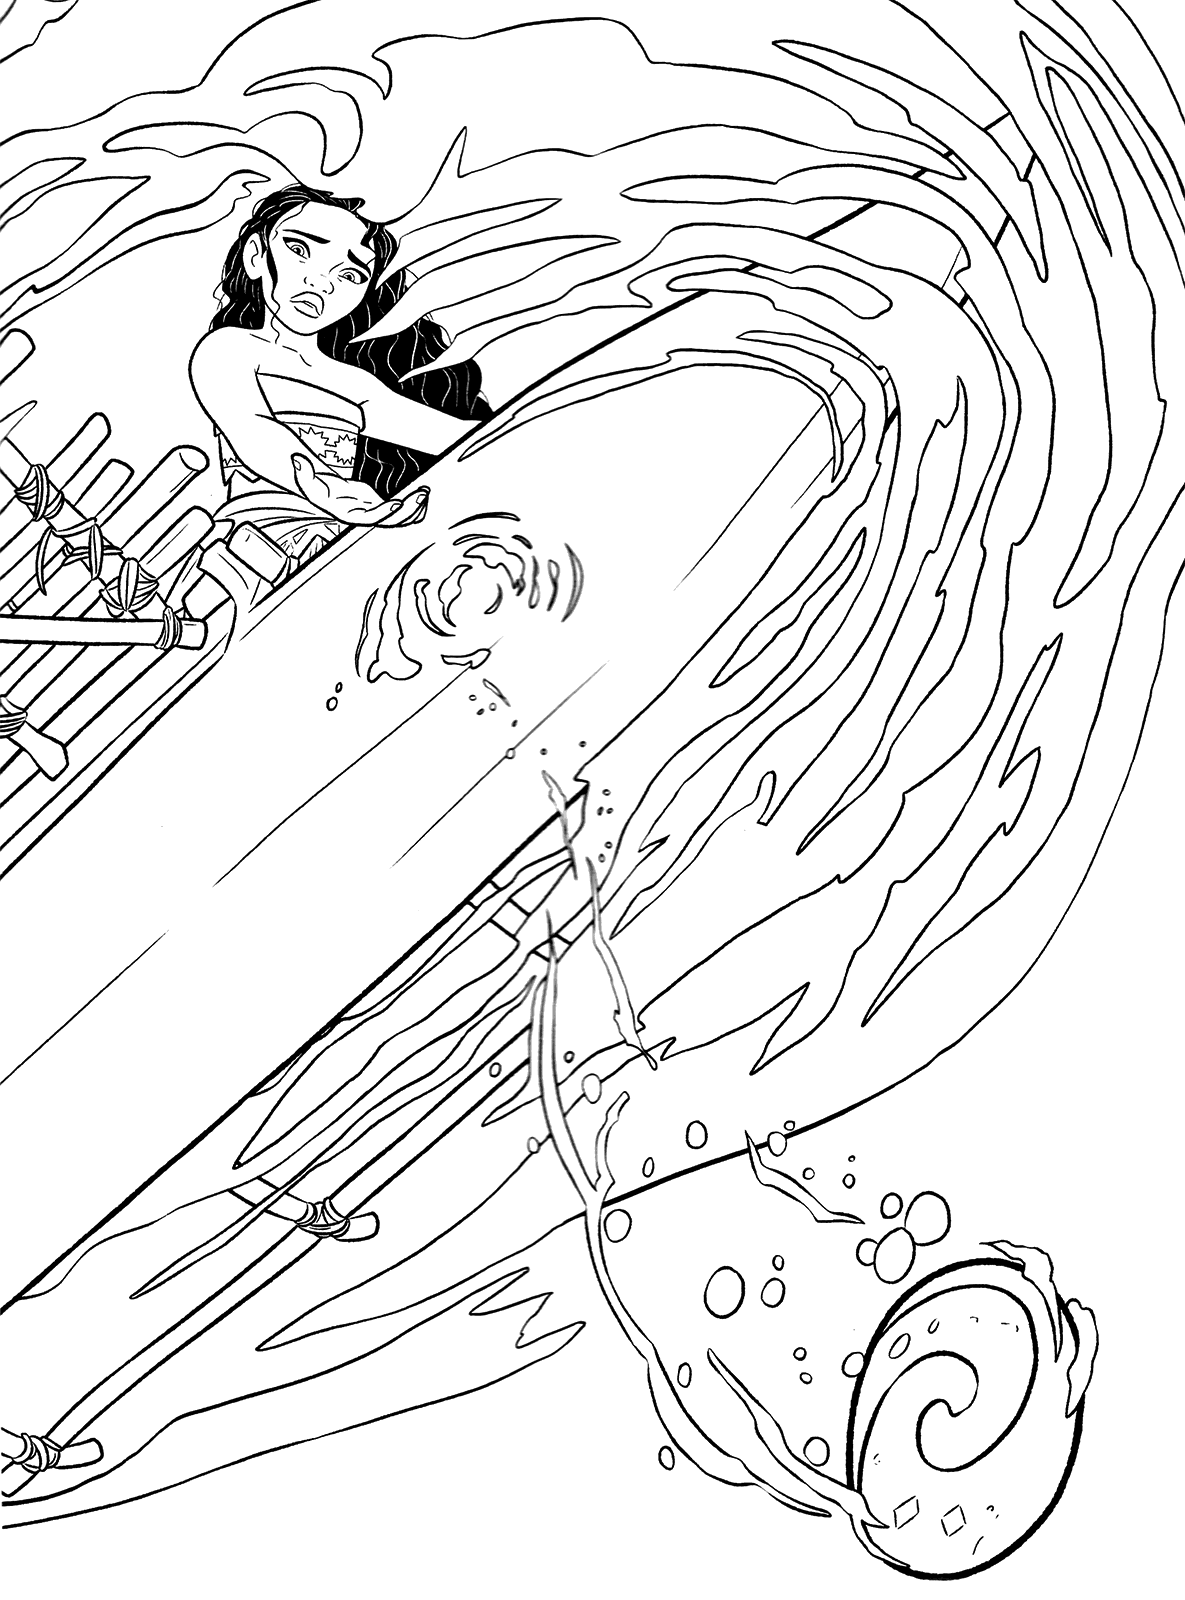 free color book pages - moana coloring pages best coloring pages for kids